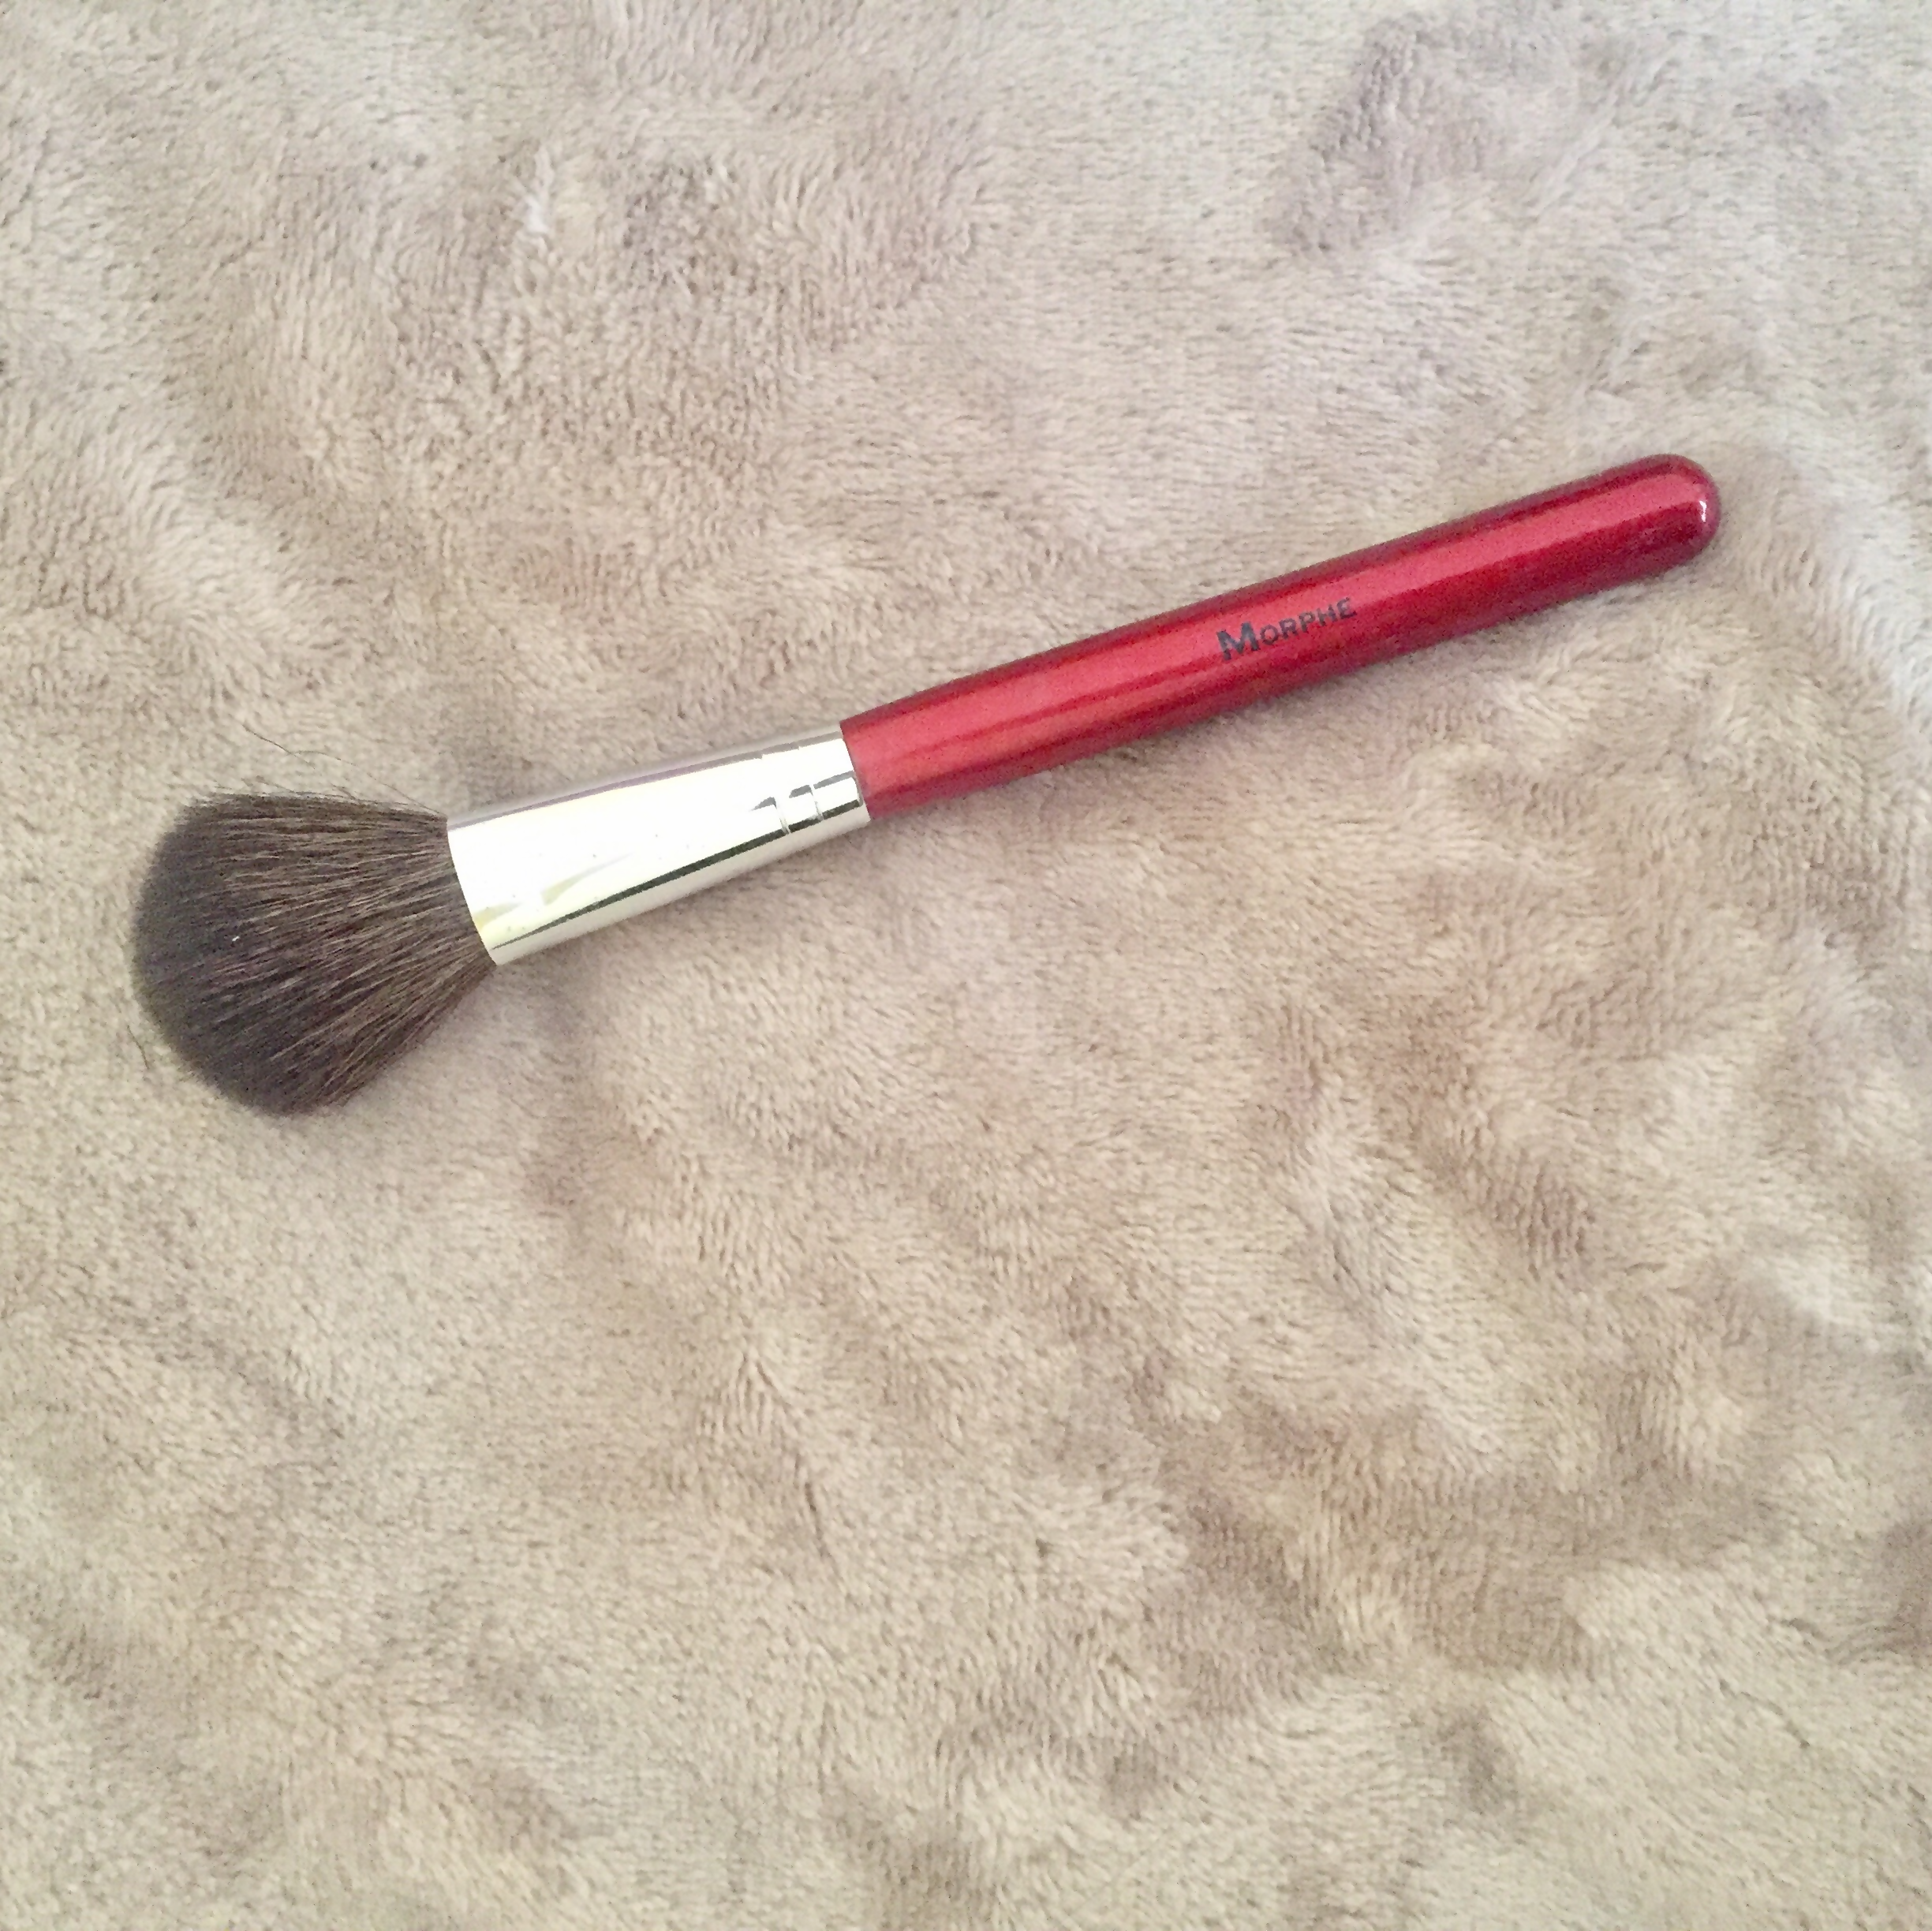 morphe blush brush